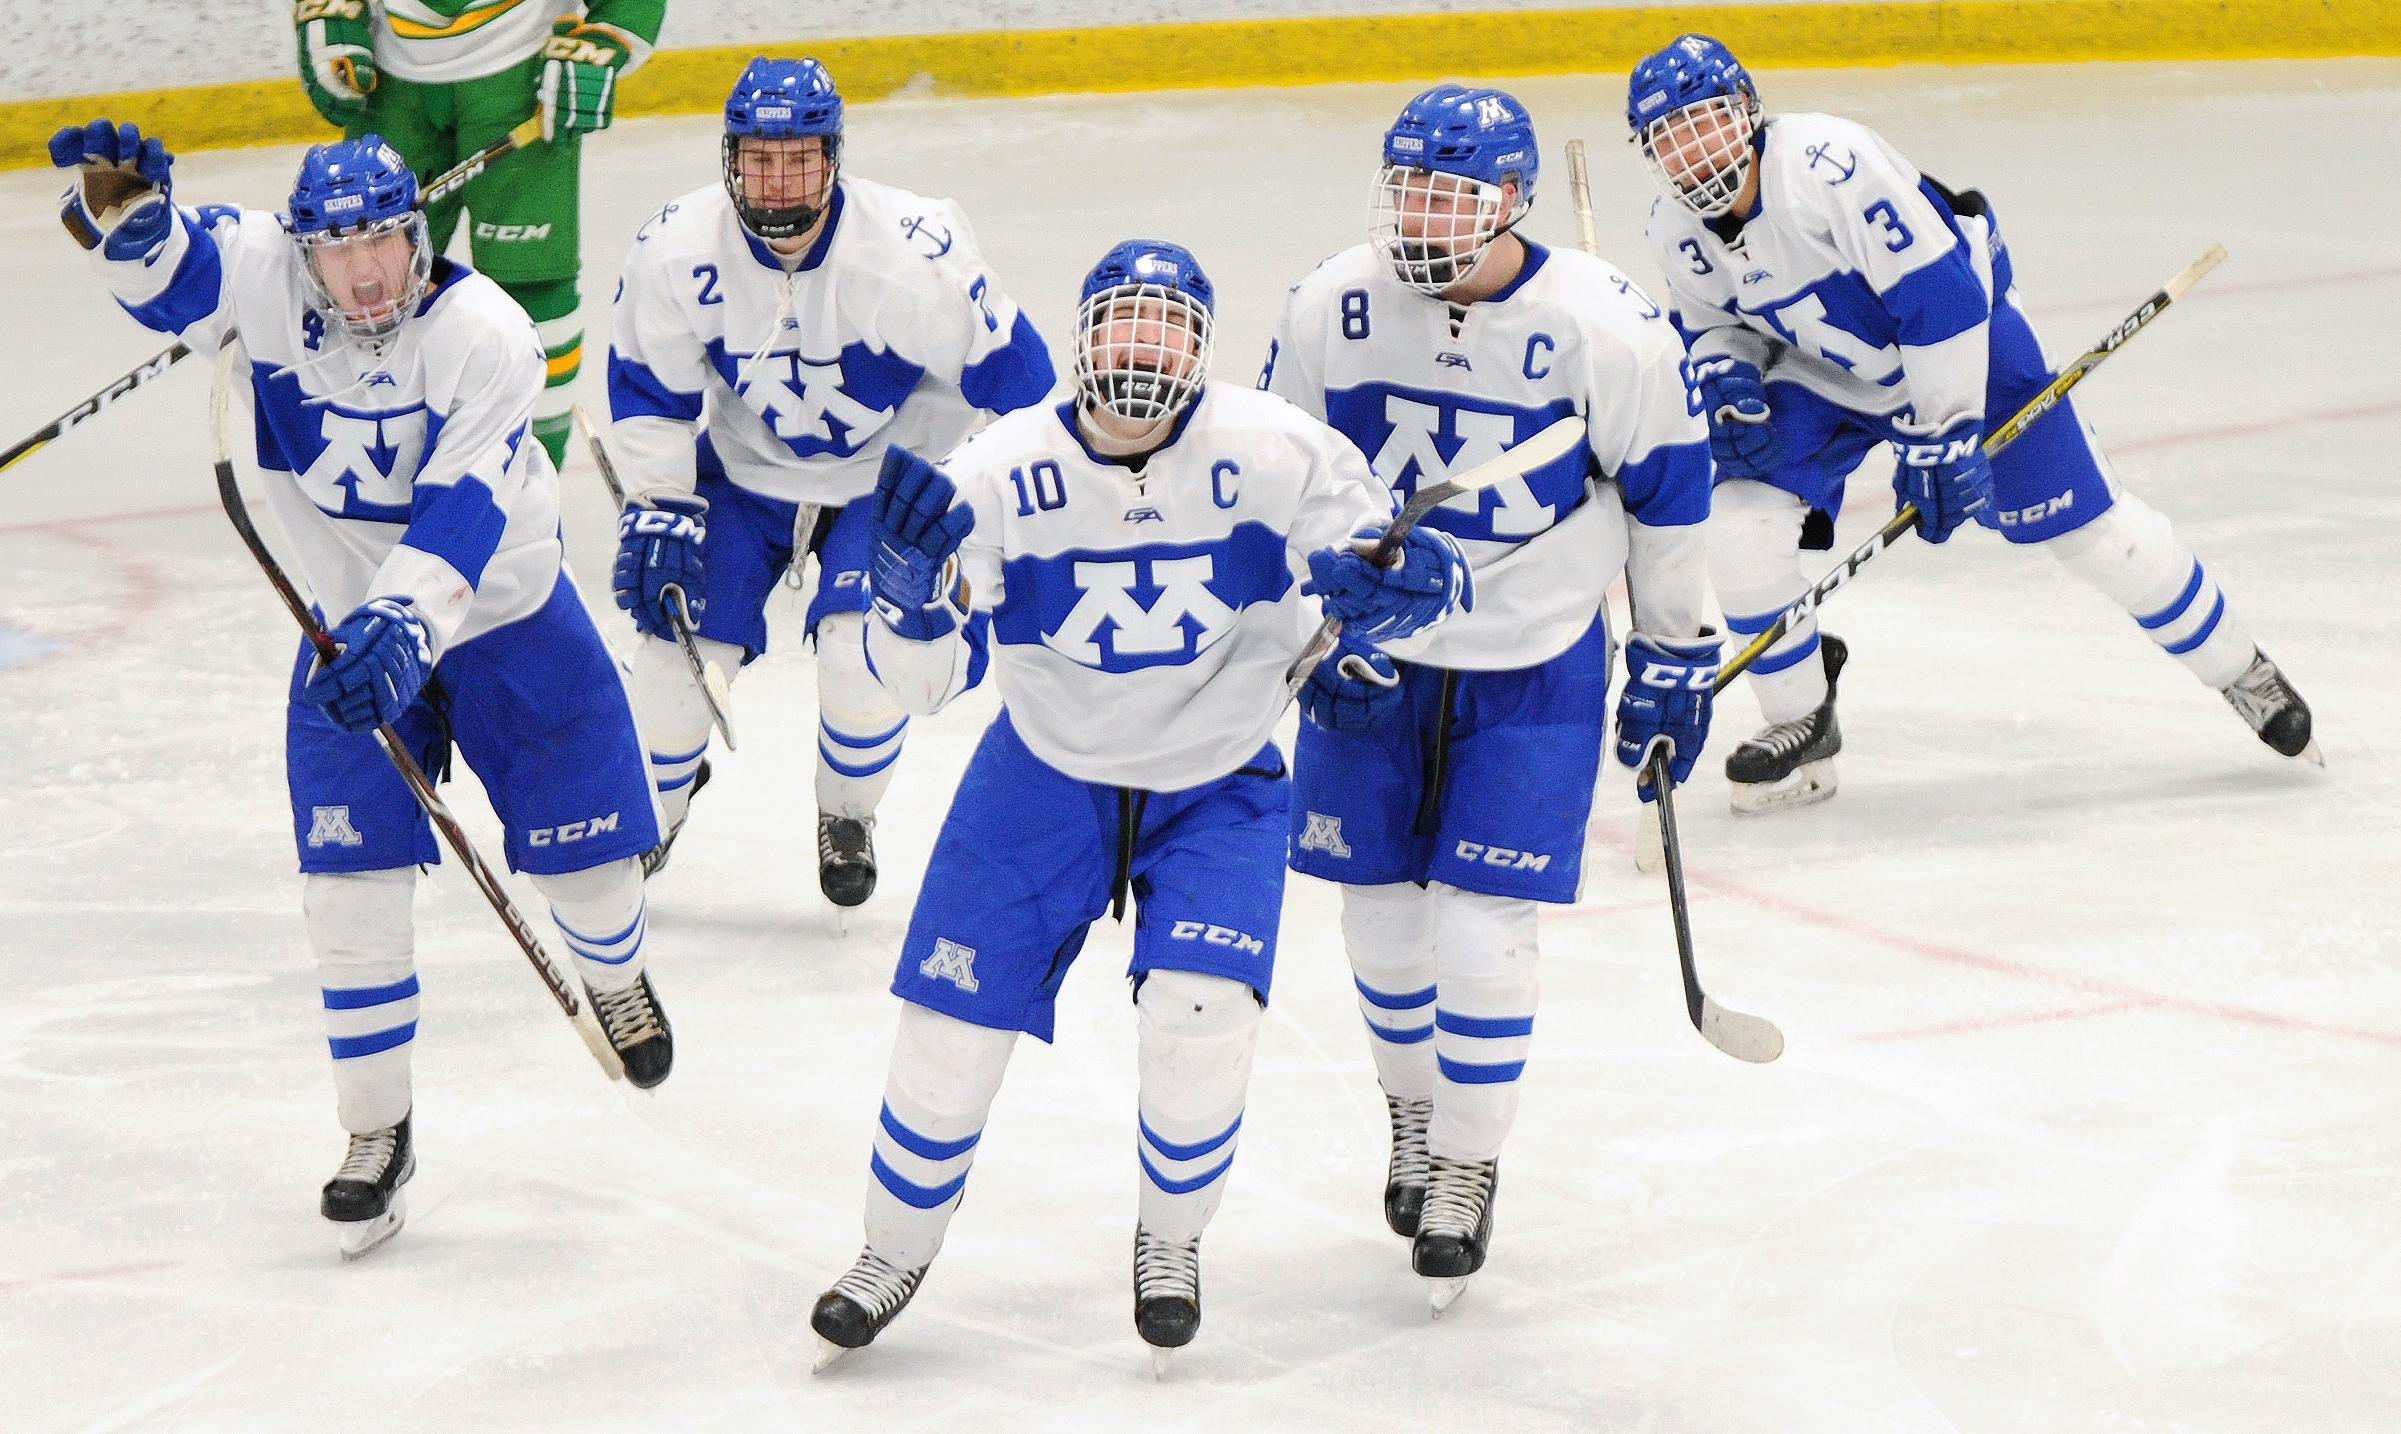 Minnetonka's Joe Molenaar (No. 10) leads the Skippers' celebration after scoring a third-period goal on Saturday afternoon. No. 2 Minnetonka beat No. 1 Edina 5-3. Photo by Loren Nelson, legacyhockeyphotography.net